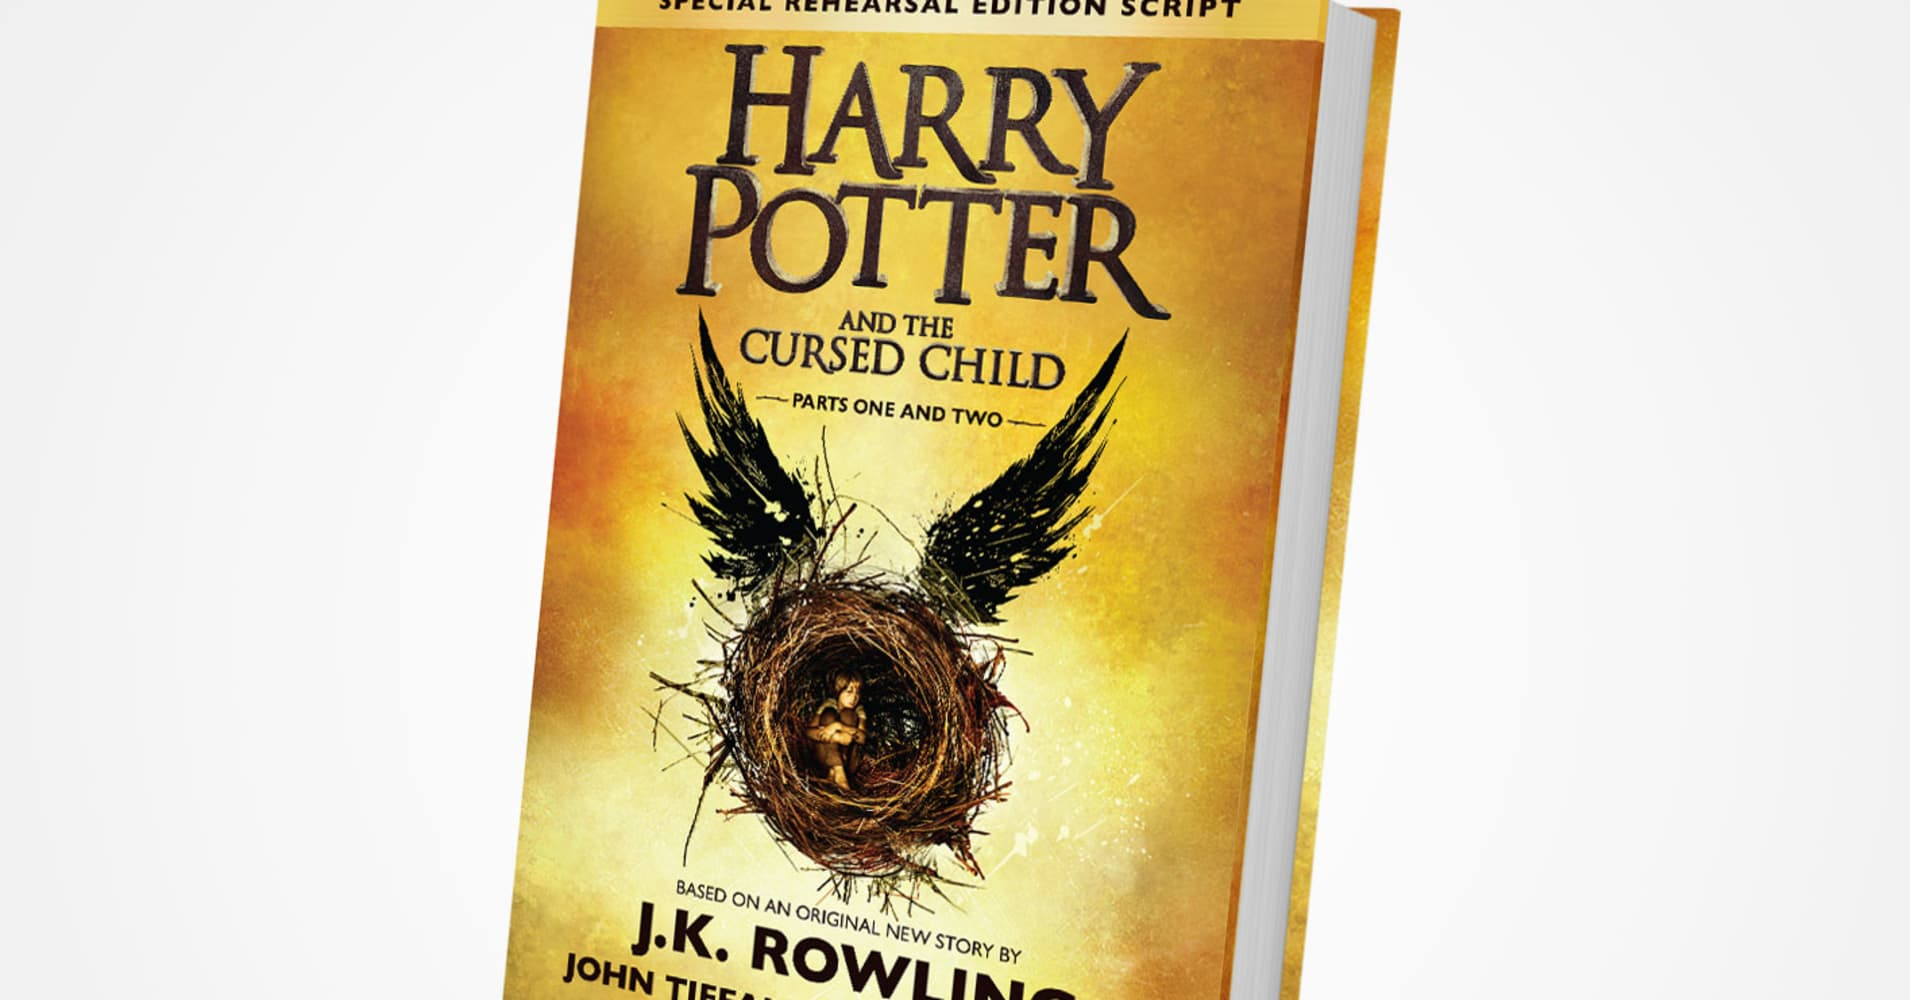 harry potter and the cursed child script ebook